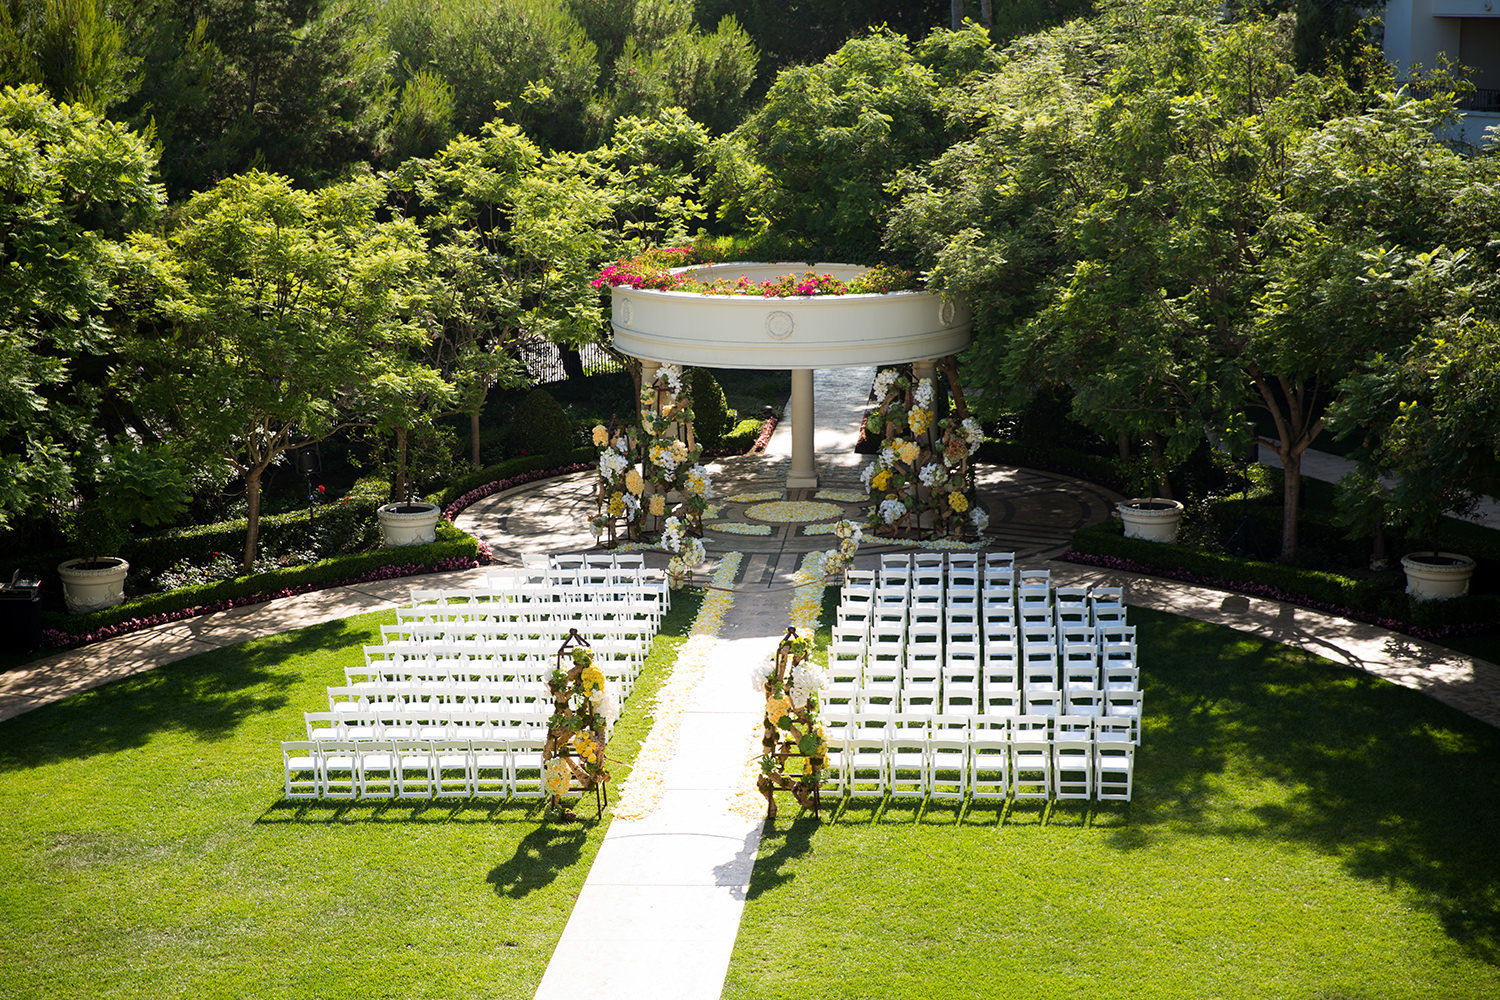 St Regis wedding ceremony site set up